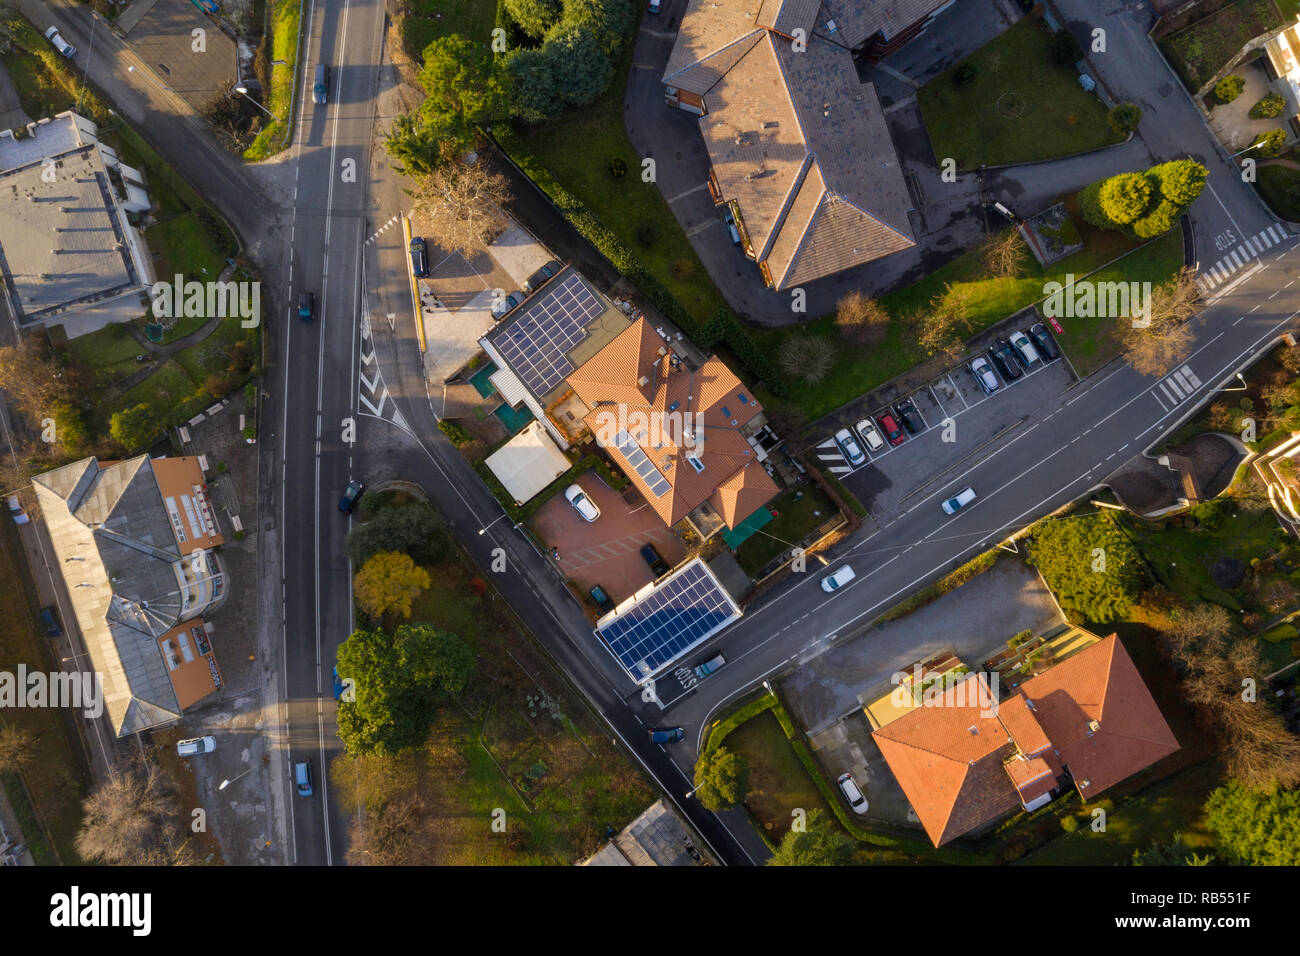 from above, houses in europe, two roads with trees, day sunrise few buildings - Stock Image